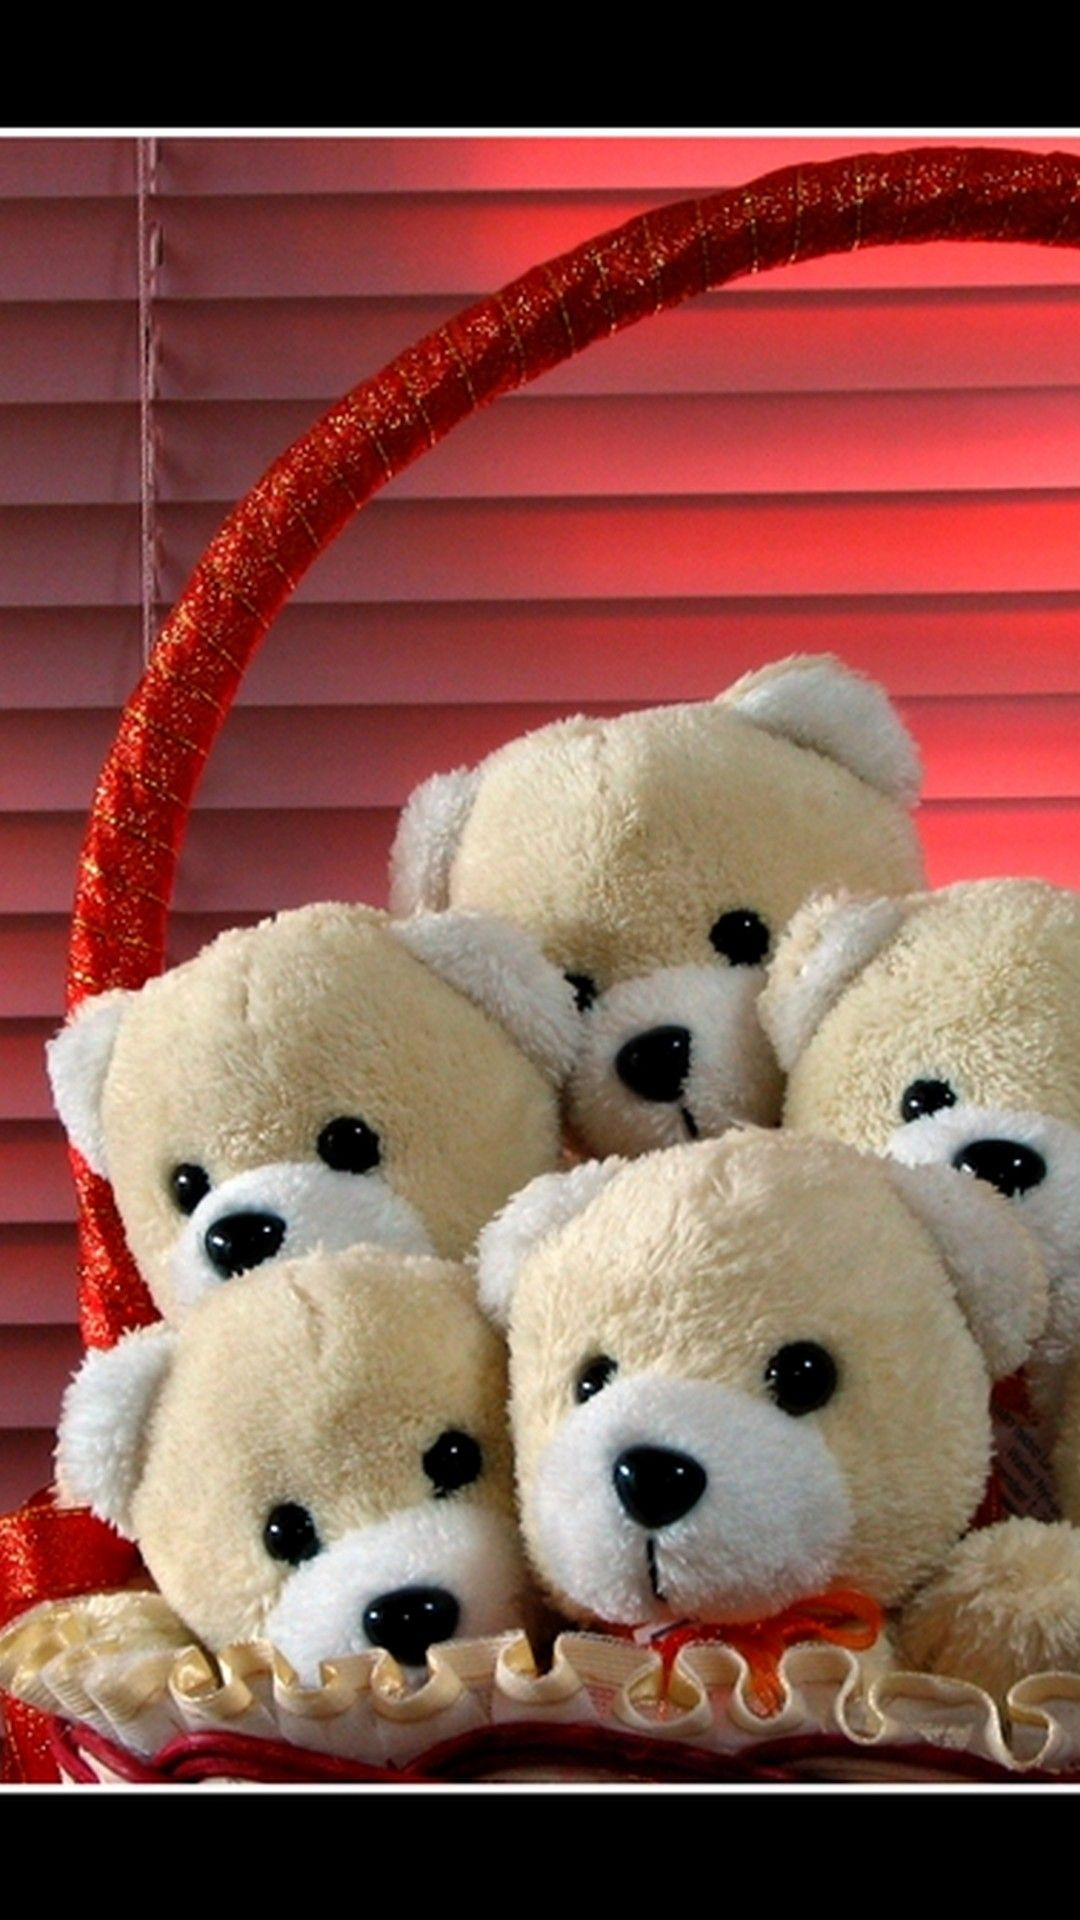 Iniciar descarga - Cute Teddy Bears Wallpapers Mobile, Hd Wallpapers